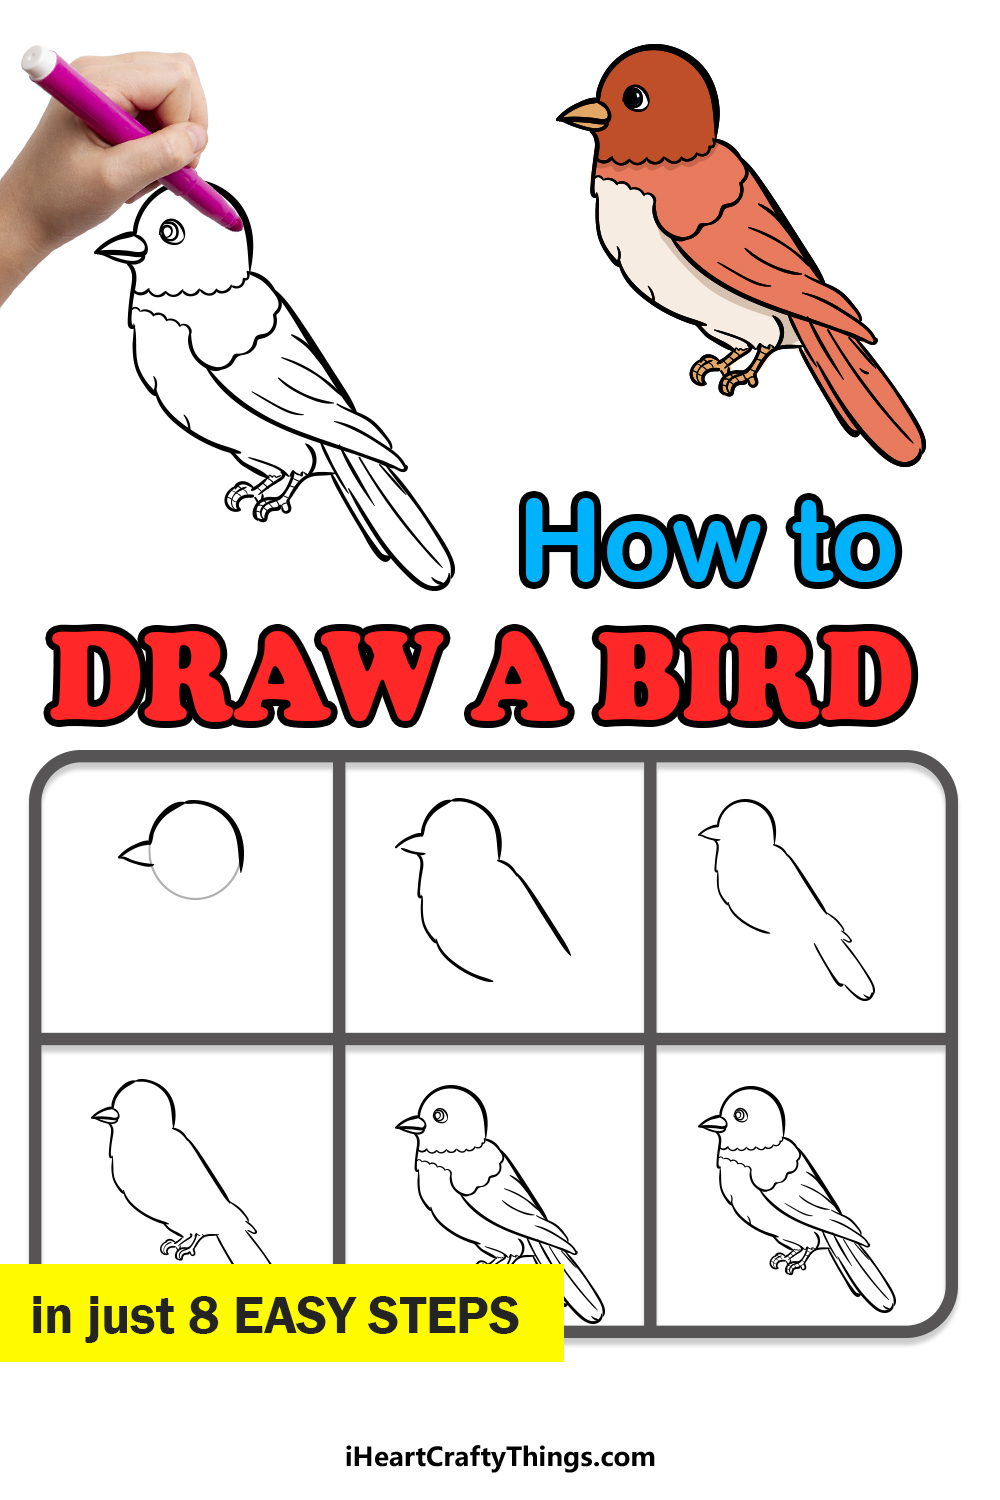 how to draw a bird in 8 easy steps